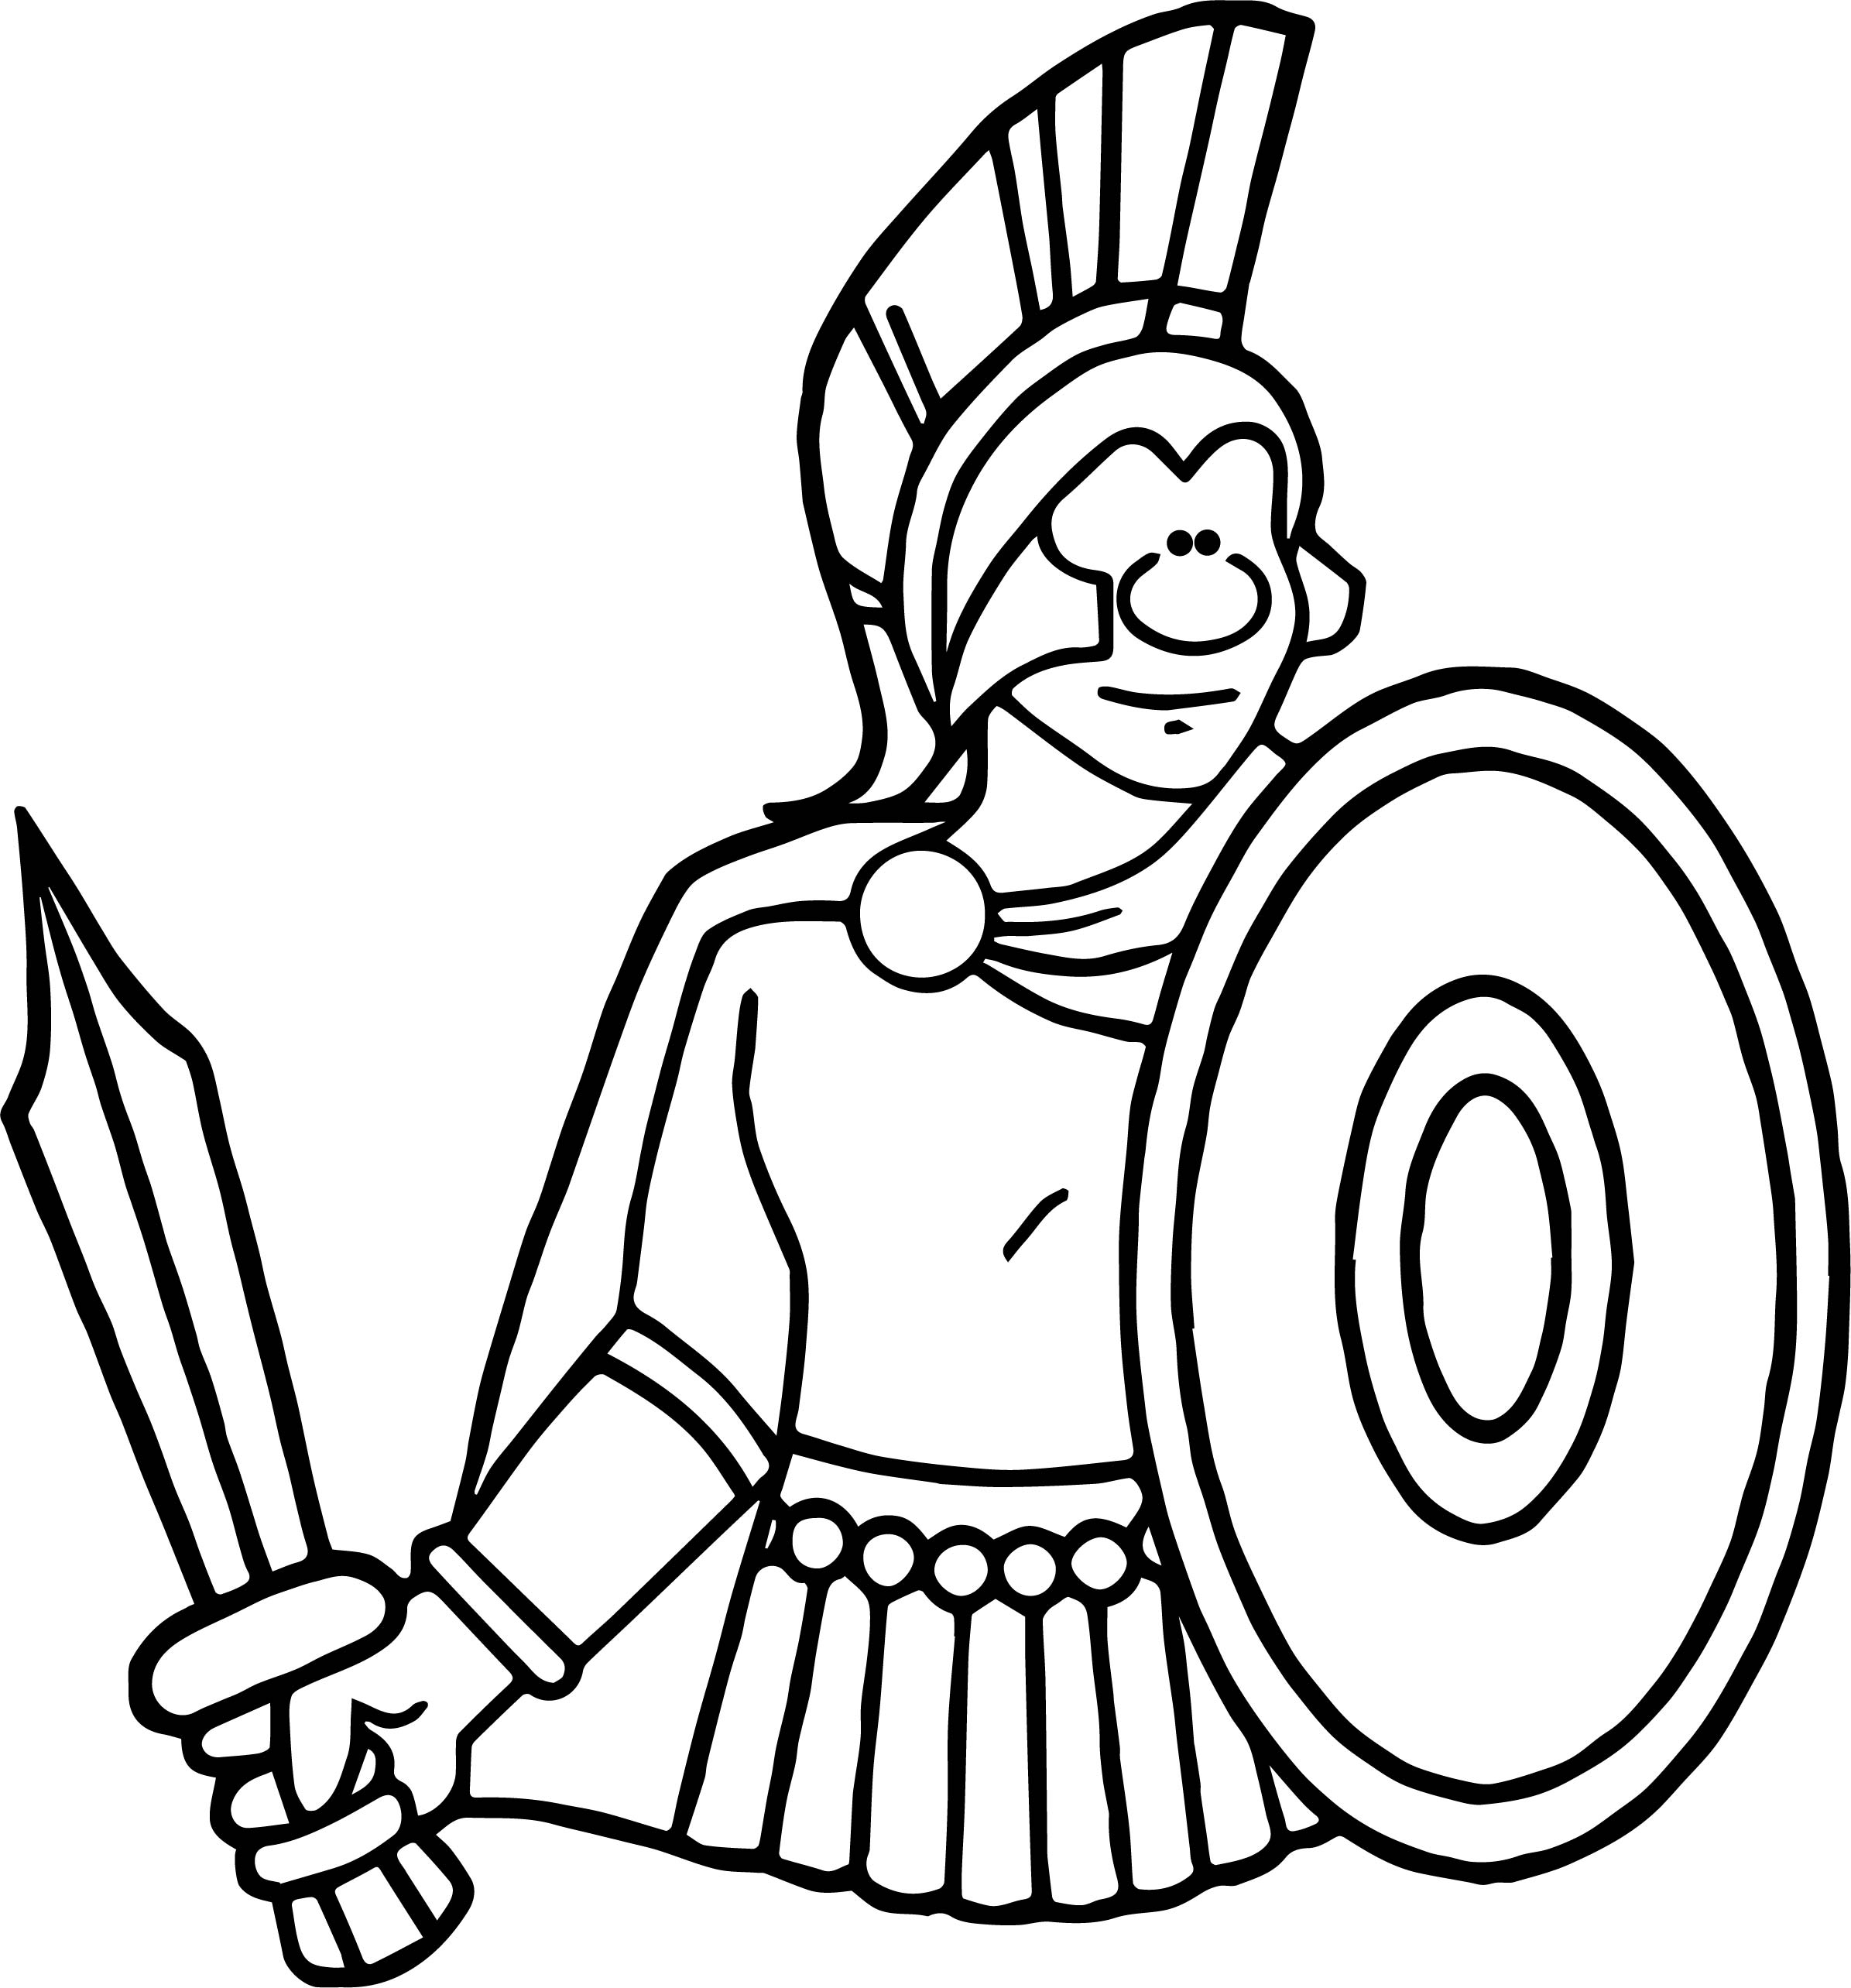 Spartan rome ancient coloring page for Ancient rome coloring pages